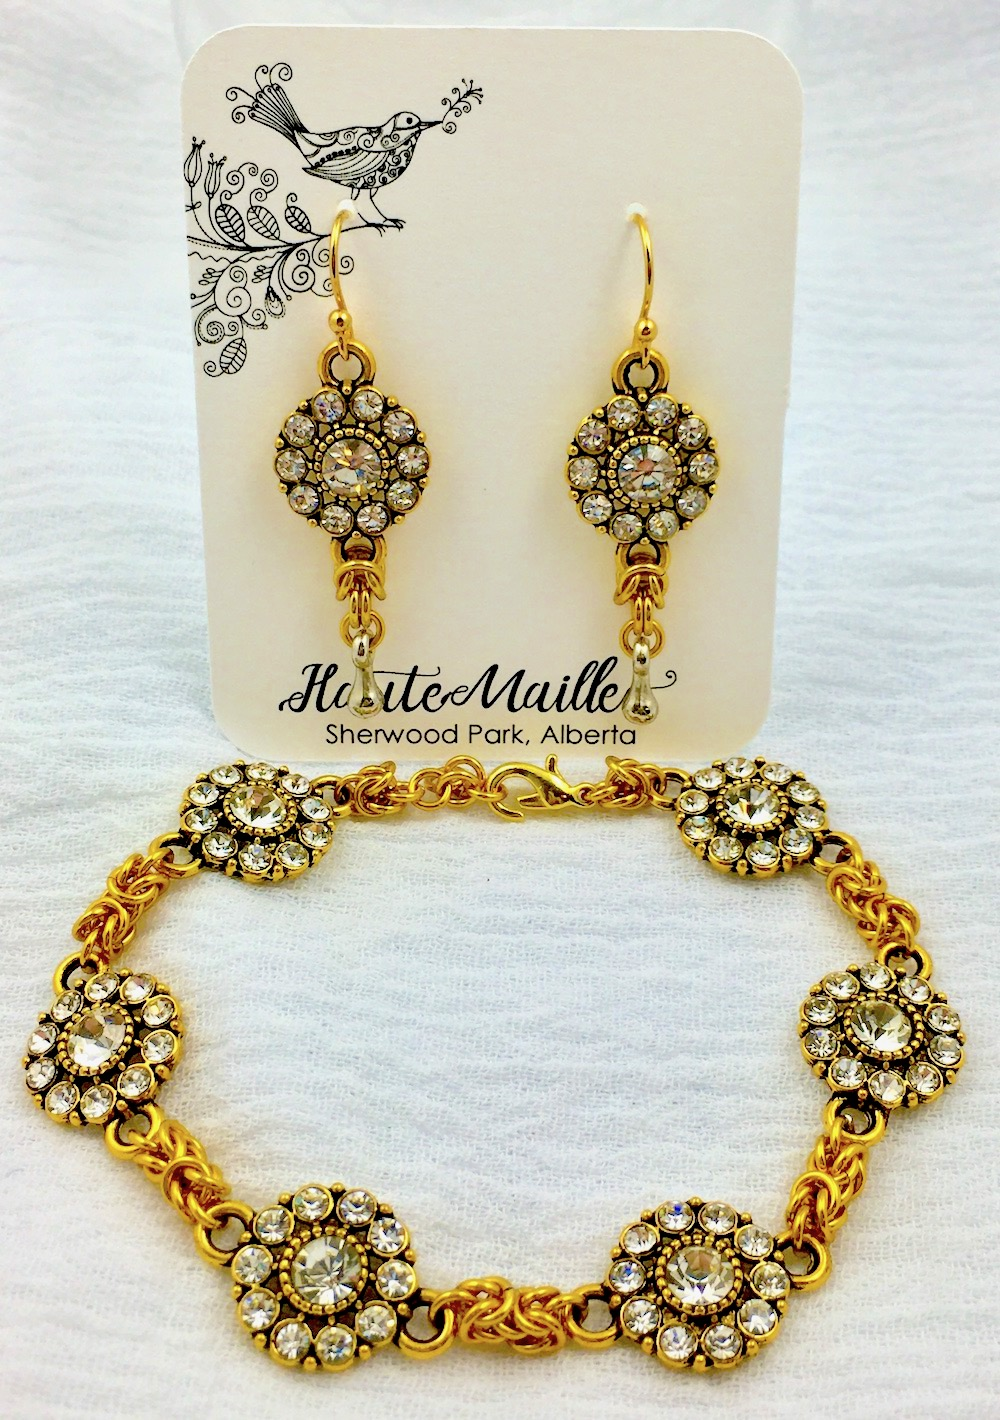 Chainmaille jewelry by Hautemaille.